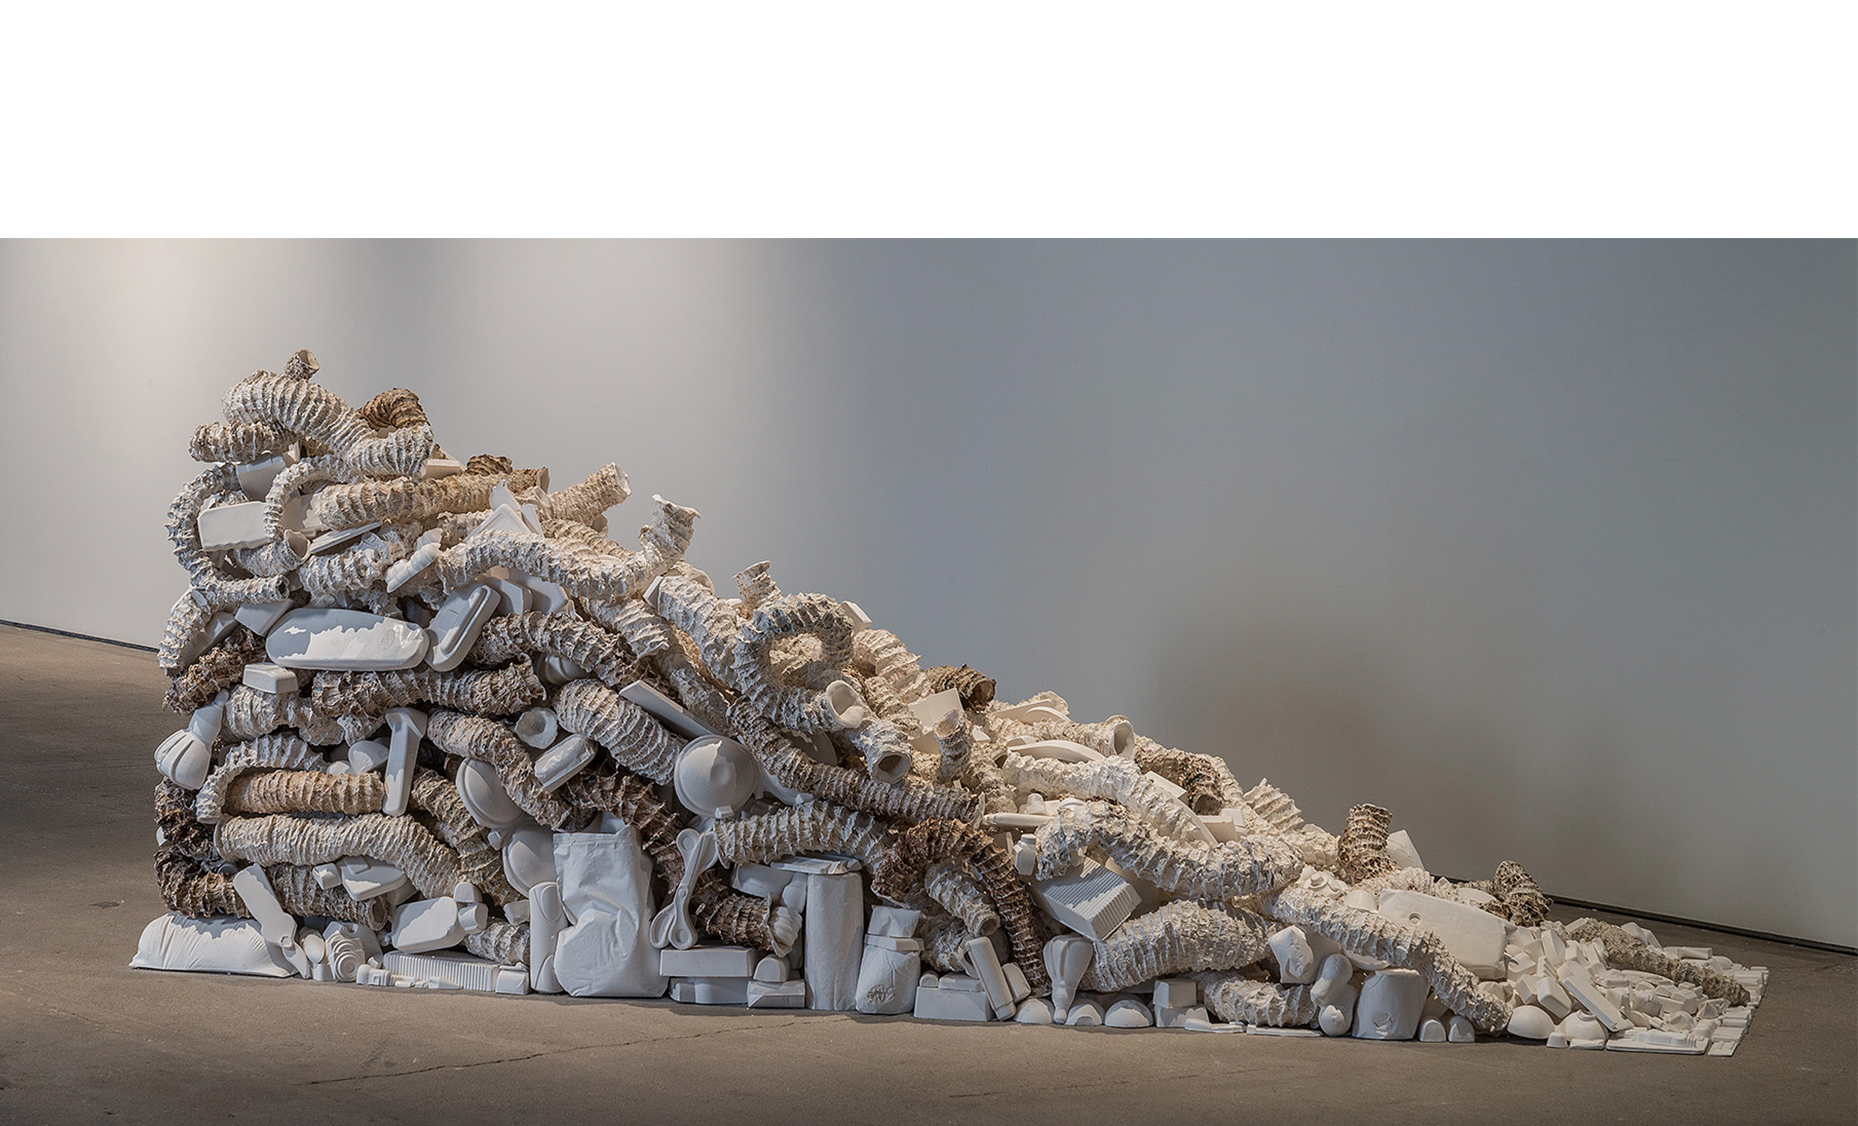 """Seemingly Unconnected Events: The Wedge  2007- 2015  Hundreds of plaster casts of organic forms interwoven and interconnected with consumer goods casts*, 90 x 30 x 45"""".  Installation at H&R Block Artspace, Kansas City, MO, Fall 2015.   Photo: E.G. Schempf"""